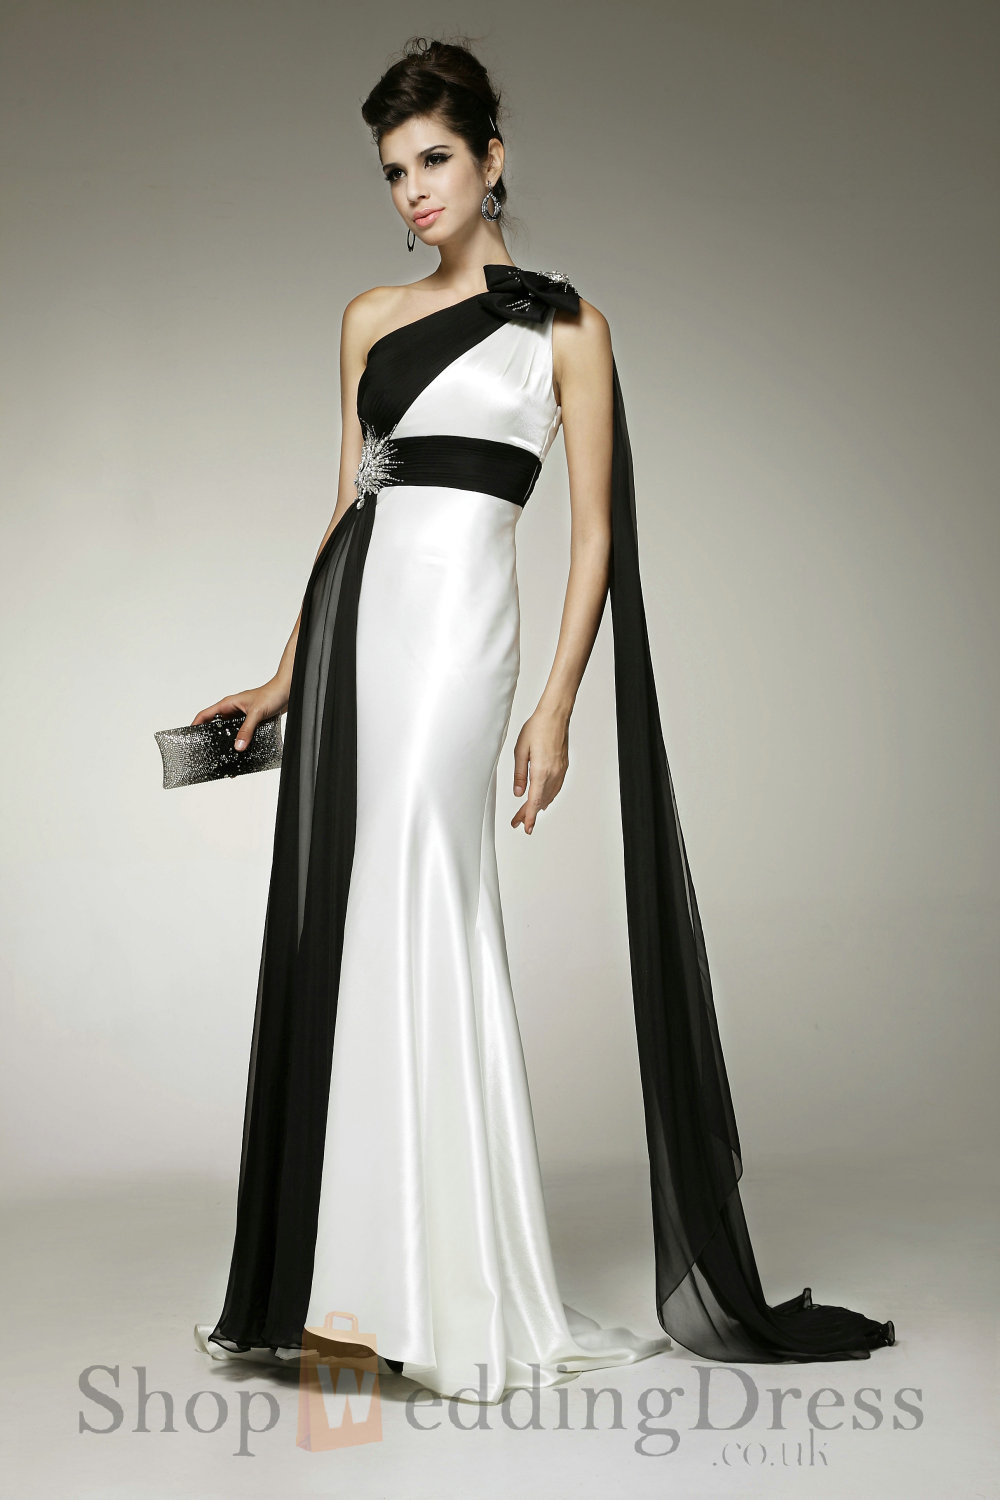 How to wear Party Gowns - 24 Dressi